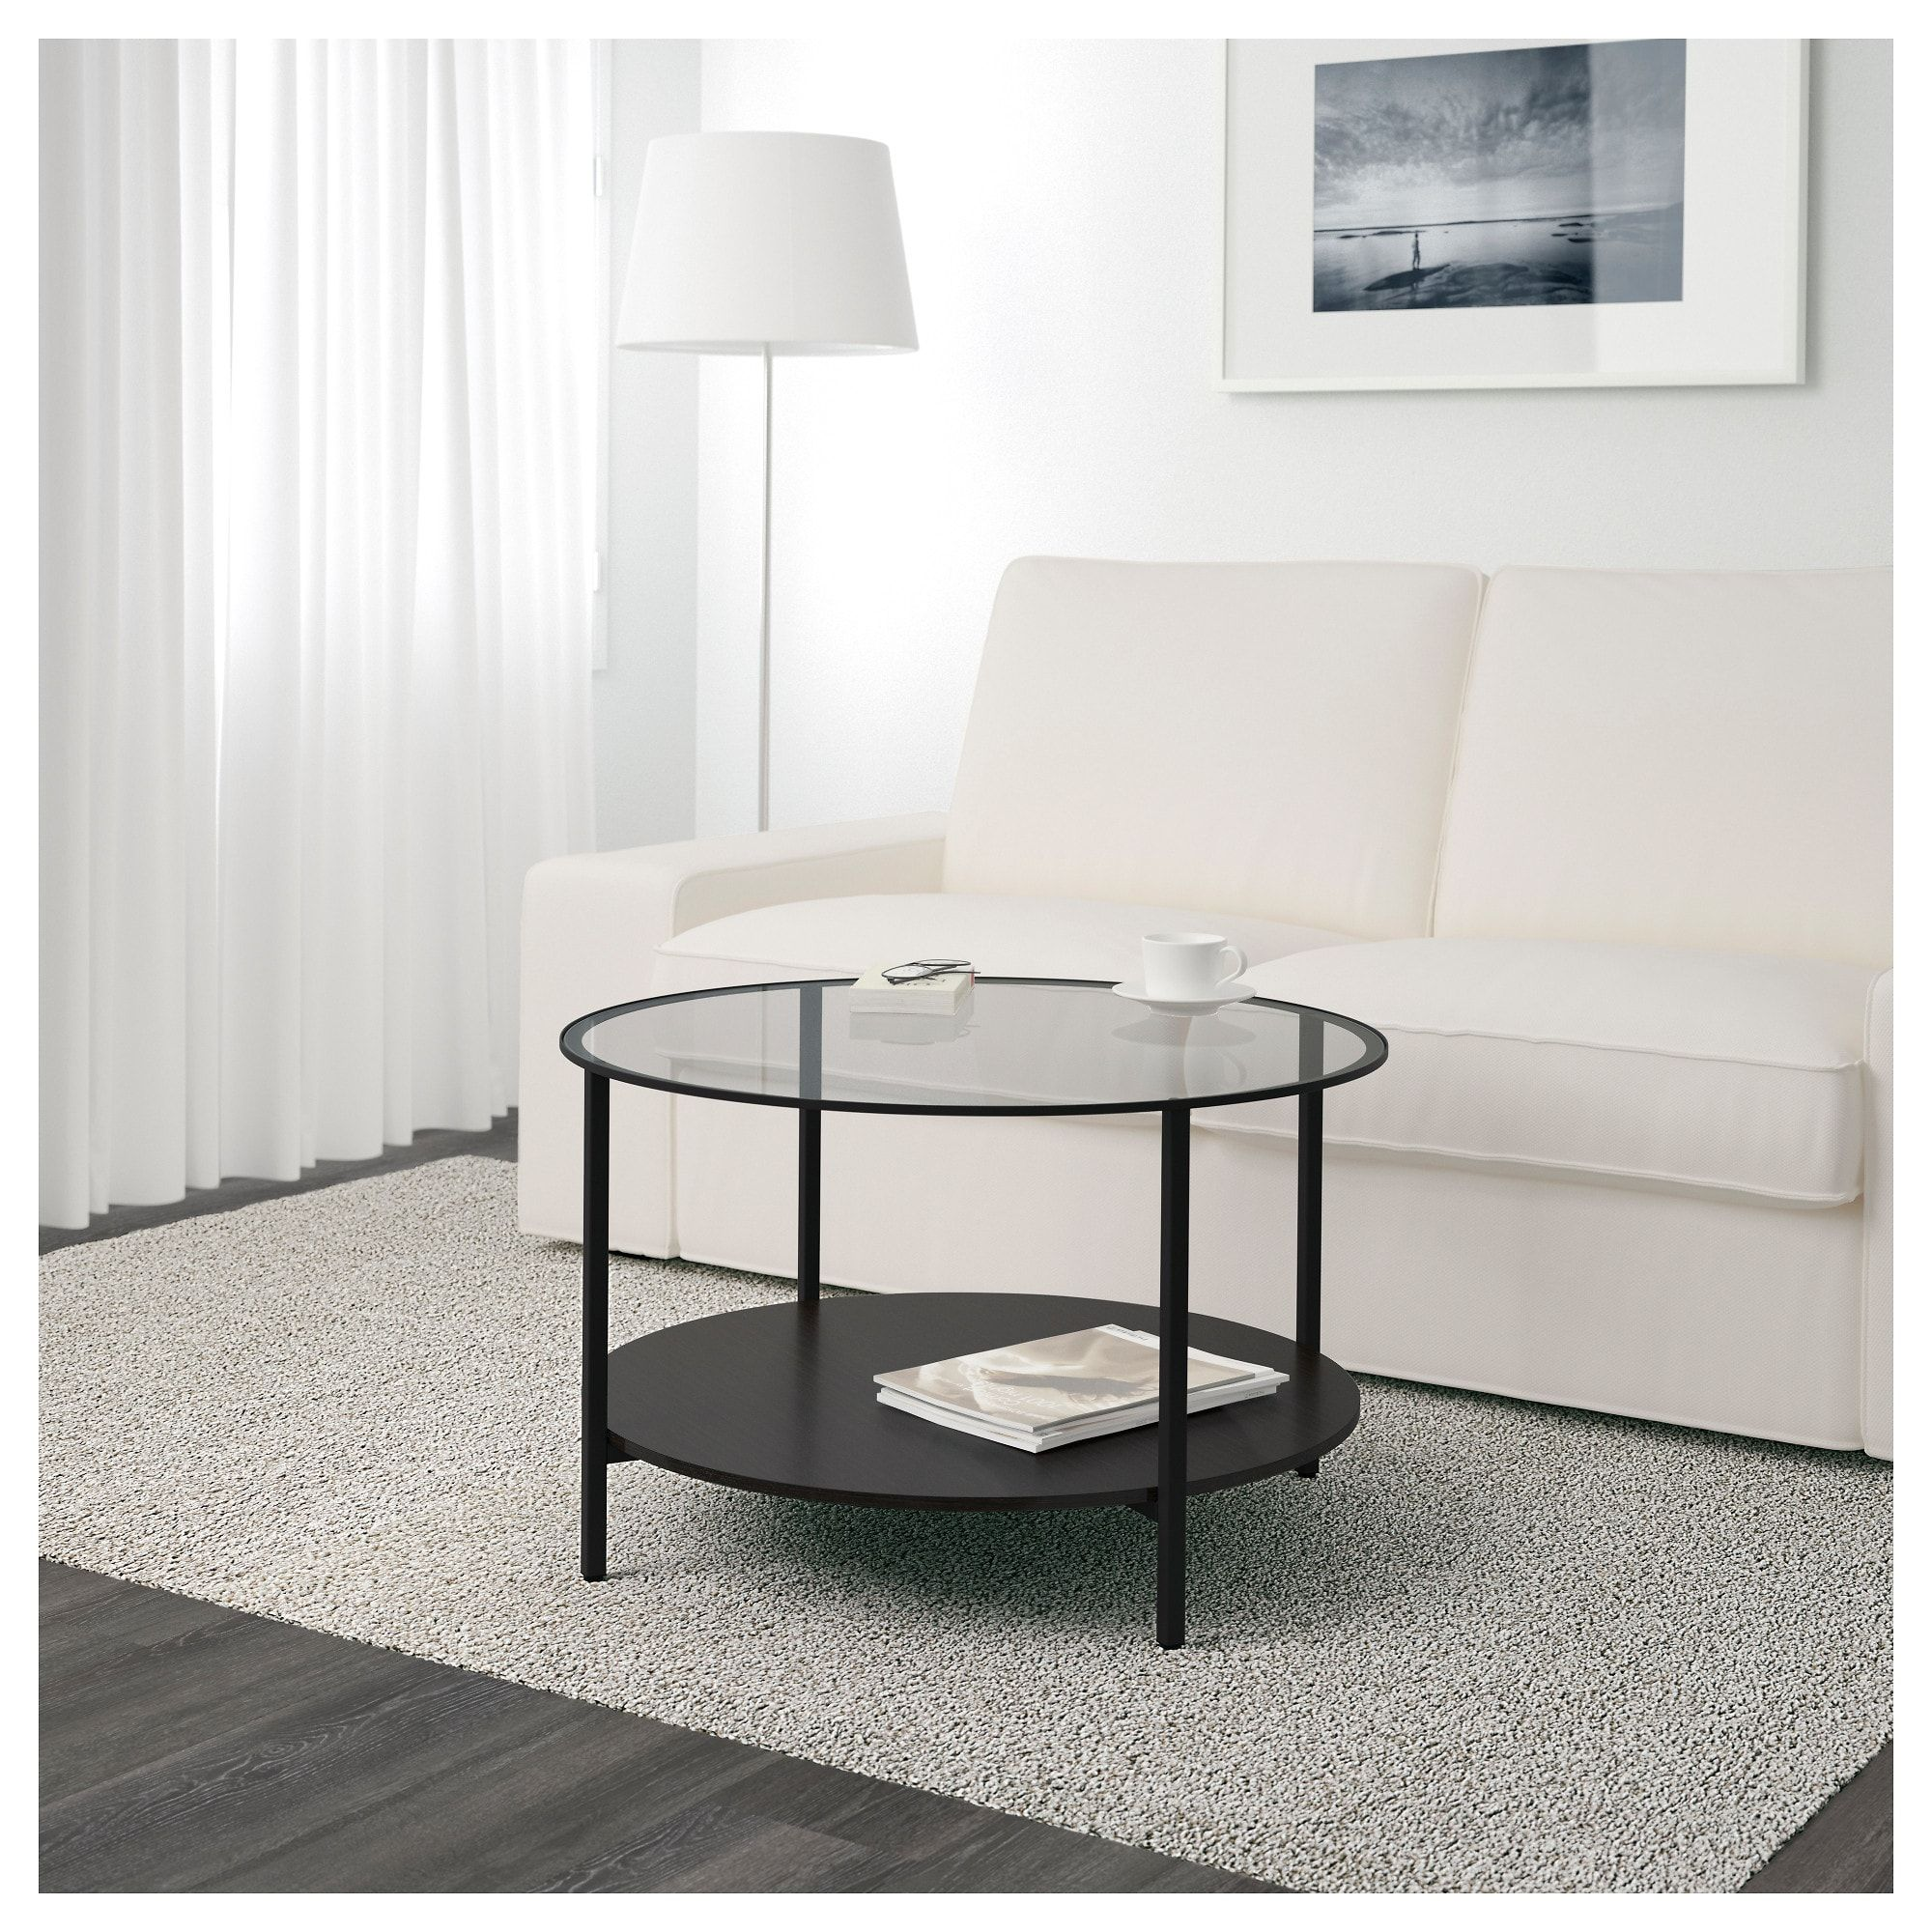 Vittsjö Table Basse Blanc Verre Home 2019 En 2019